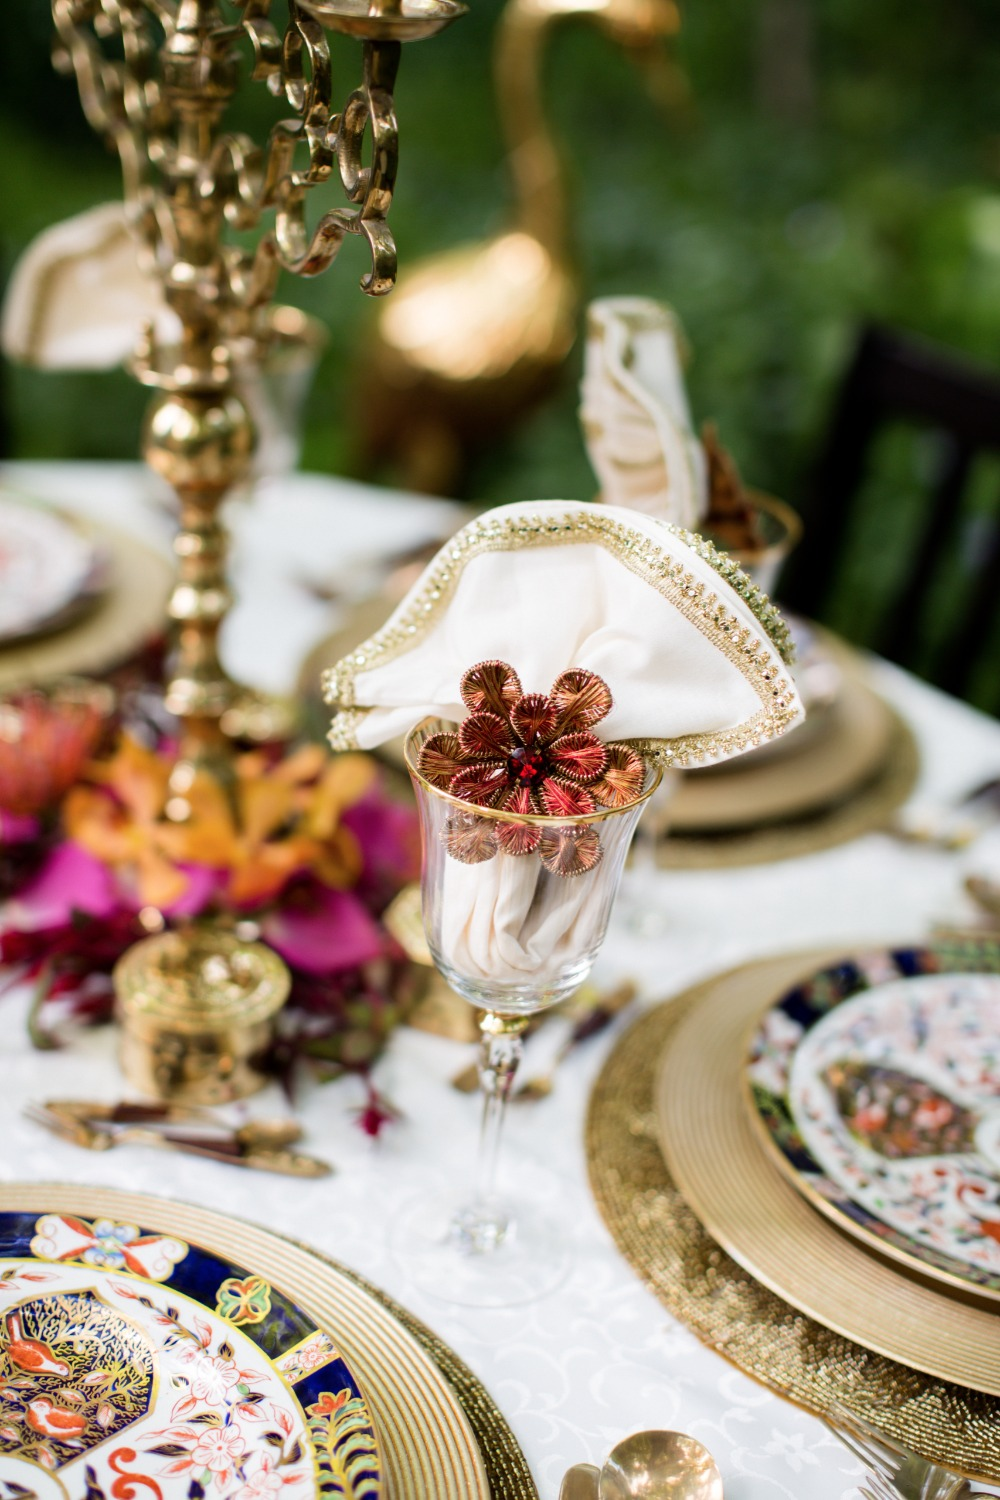 Eclectic place setting ideas